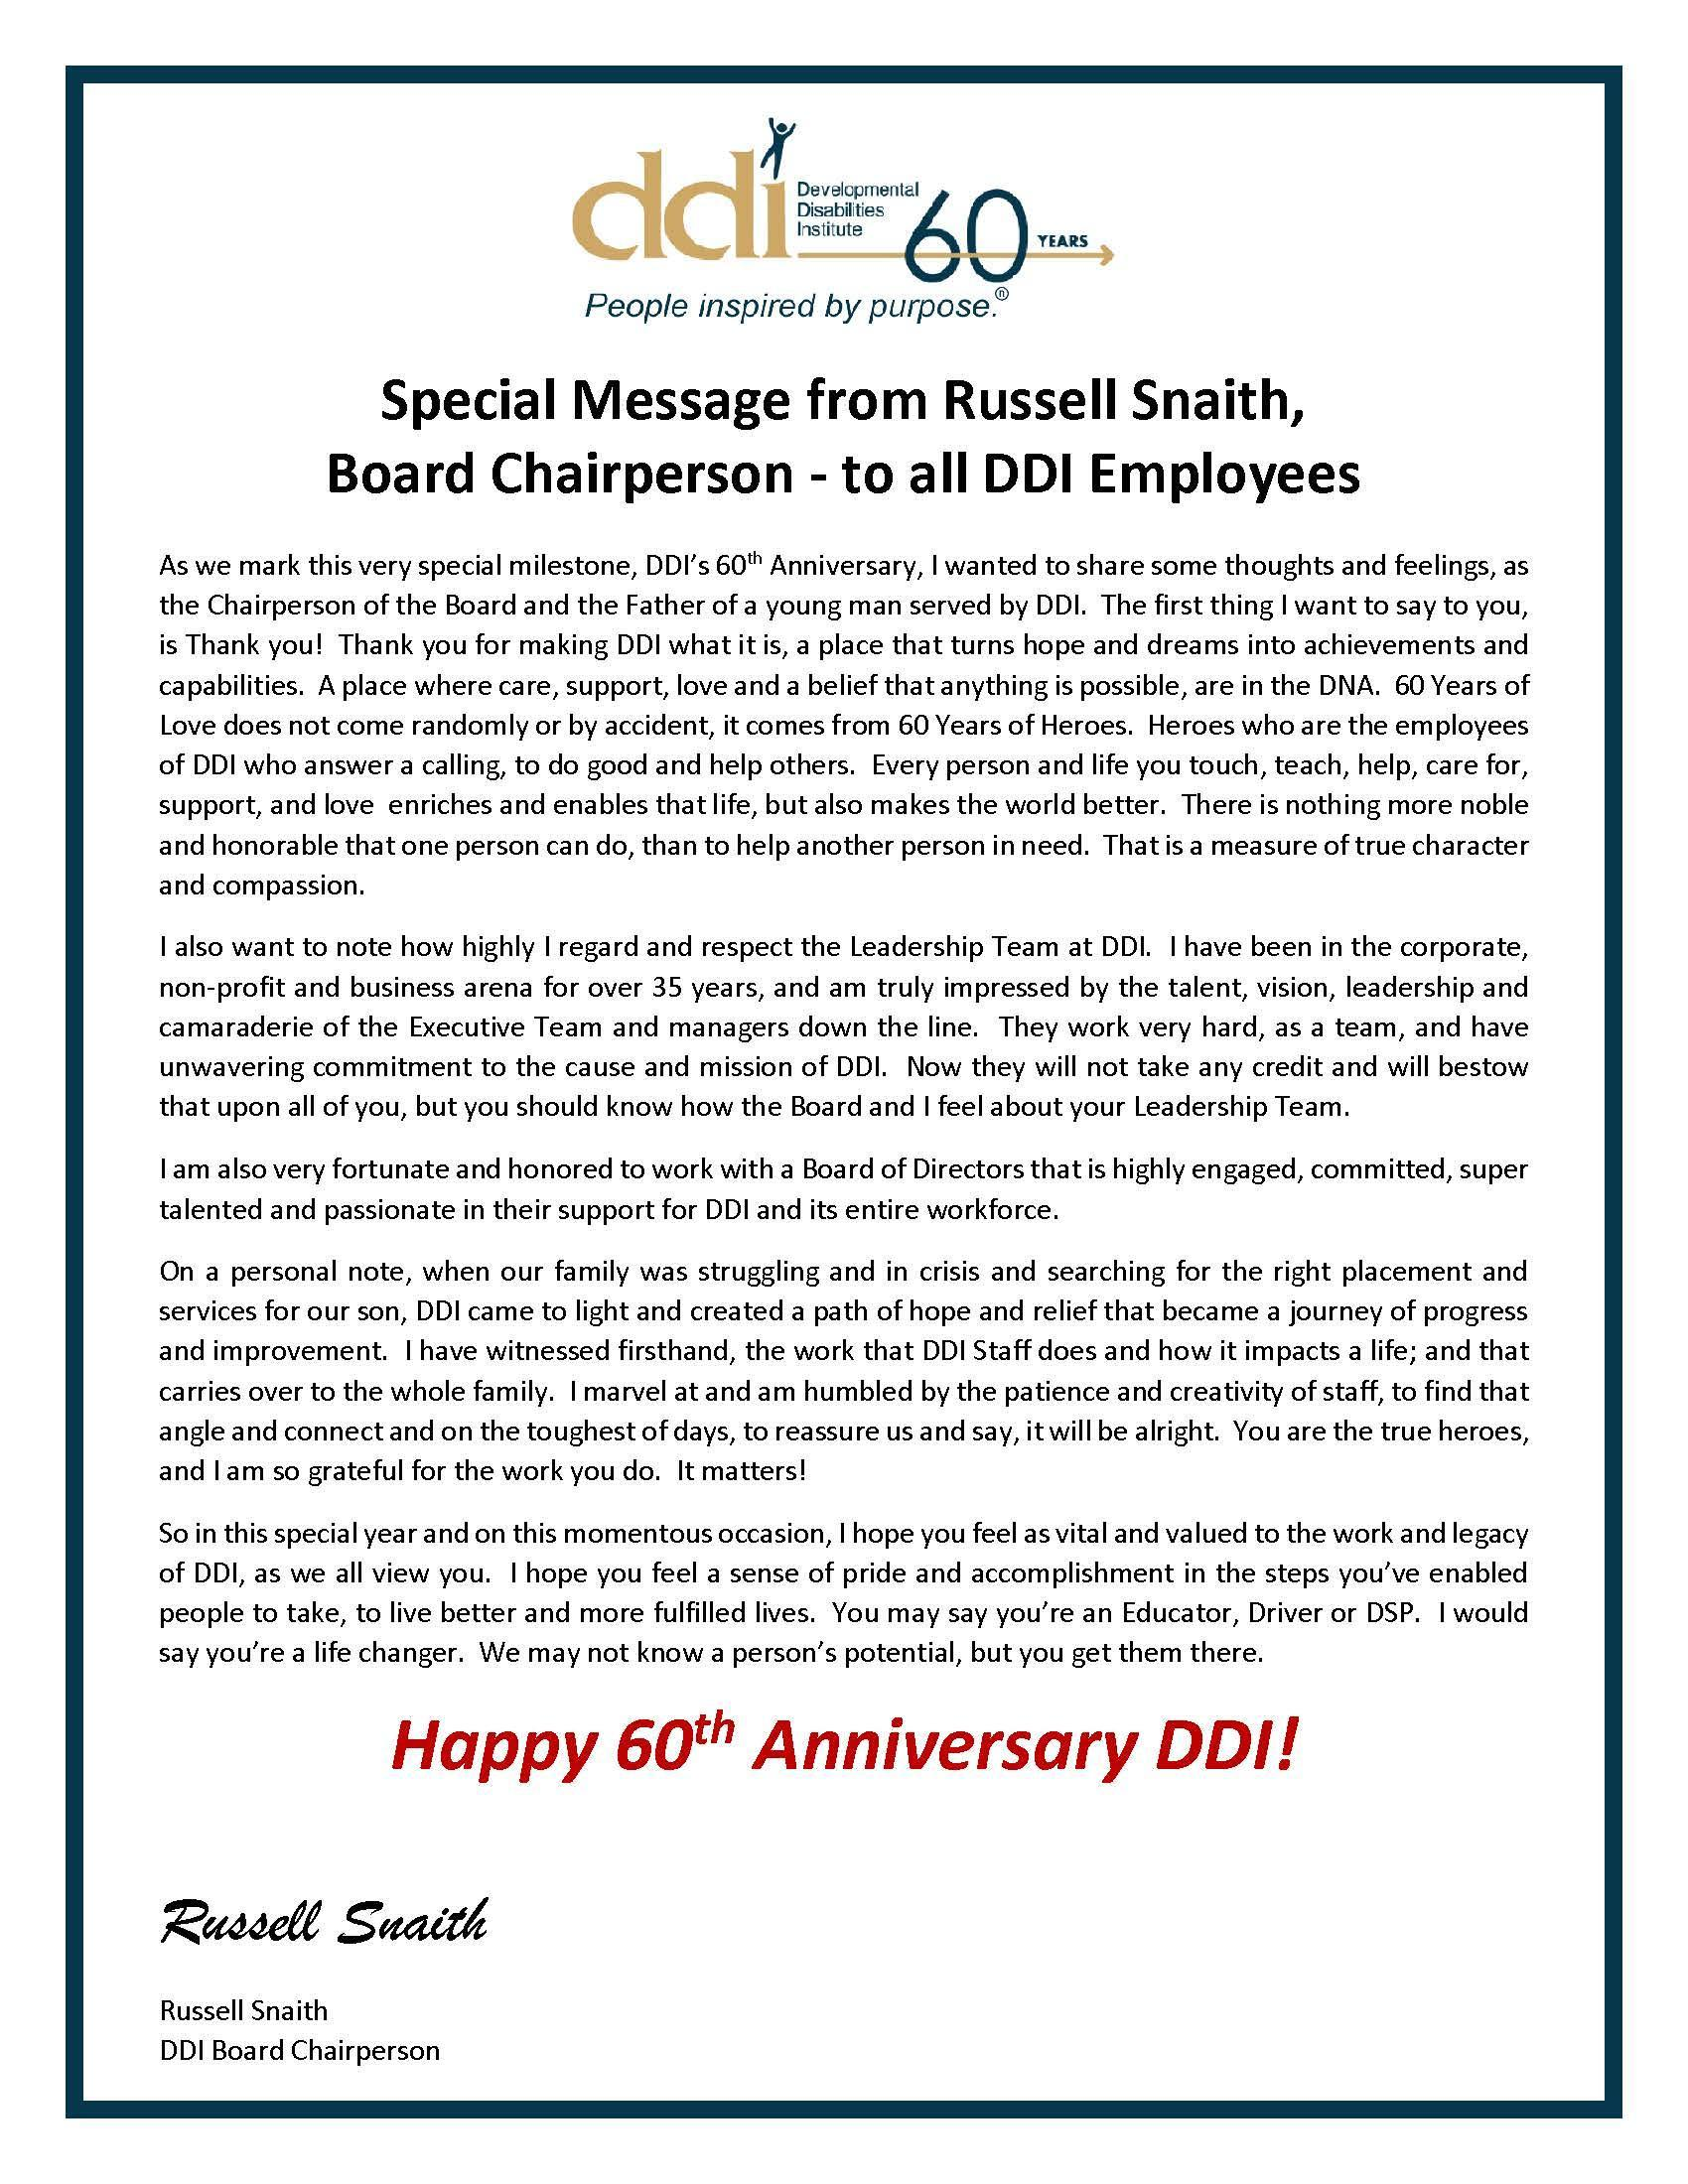 Message from Board Chairperson to all DDI Staff